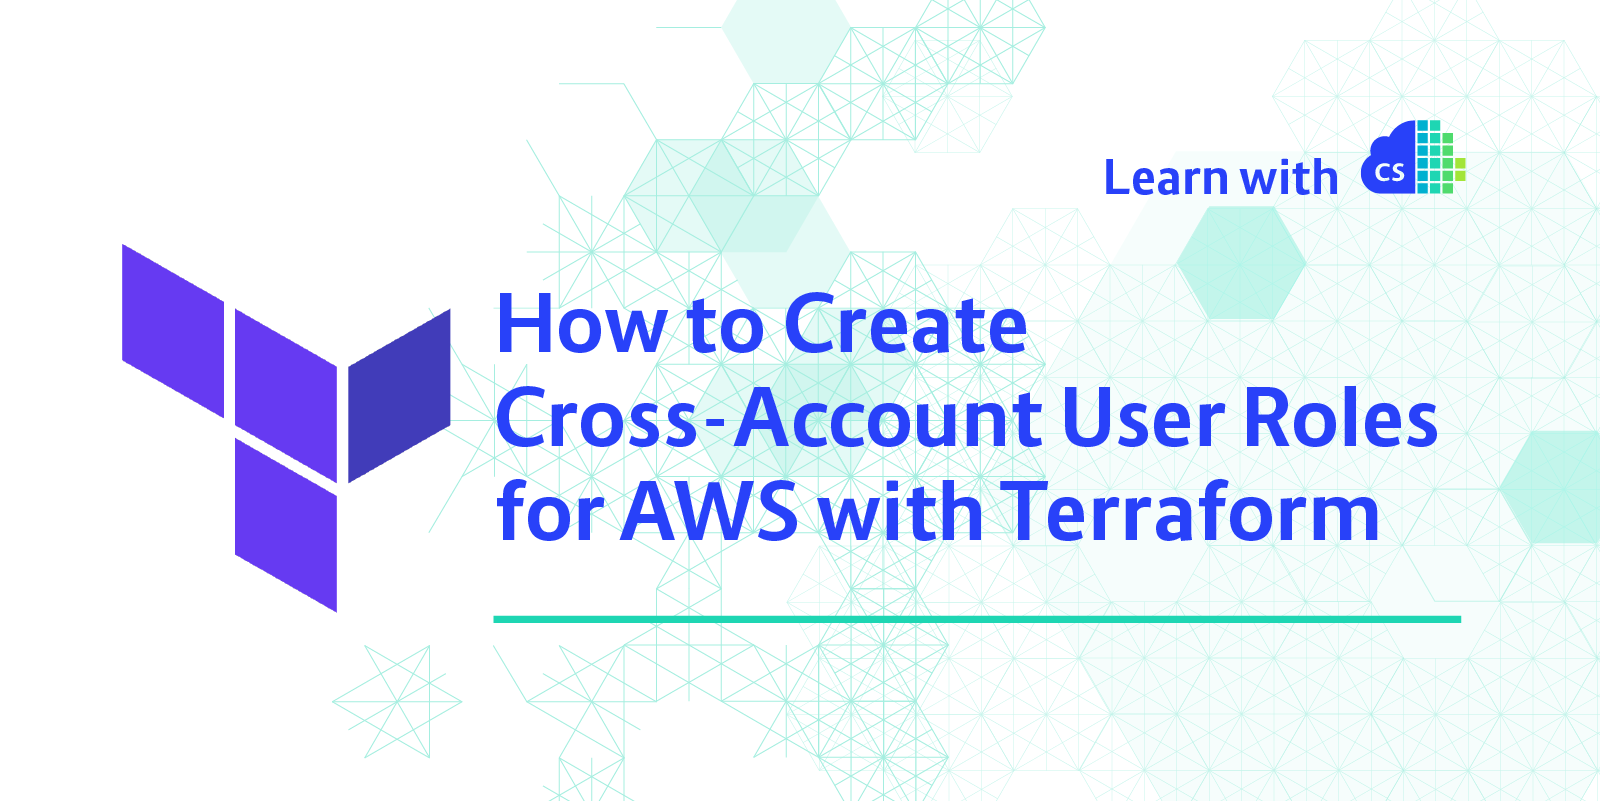 How to Create Cross-Account User Roles for AWS with Terraform